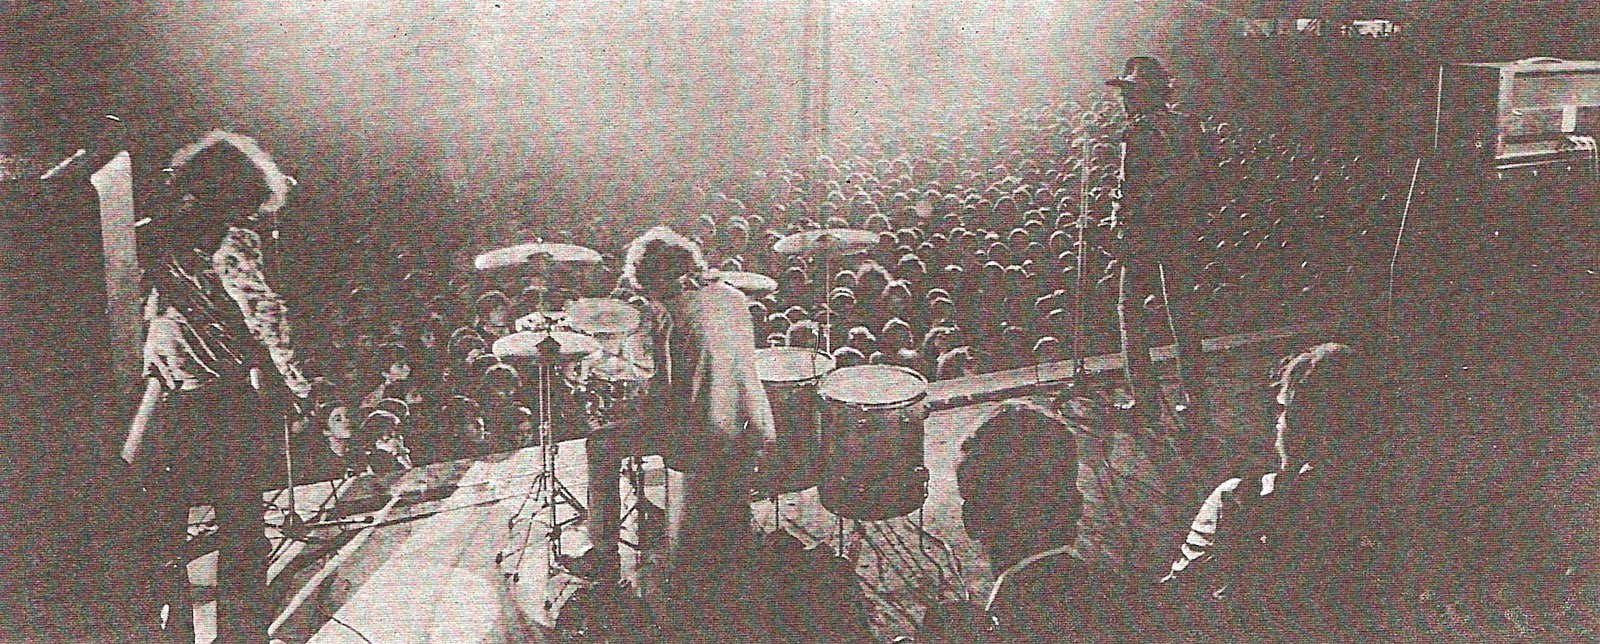 Londres (Olympia/Christmas On Earth Continued) : 22 décembre 1967 8877e32cefe7d7e4dd9c24afec58f7a3